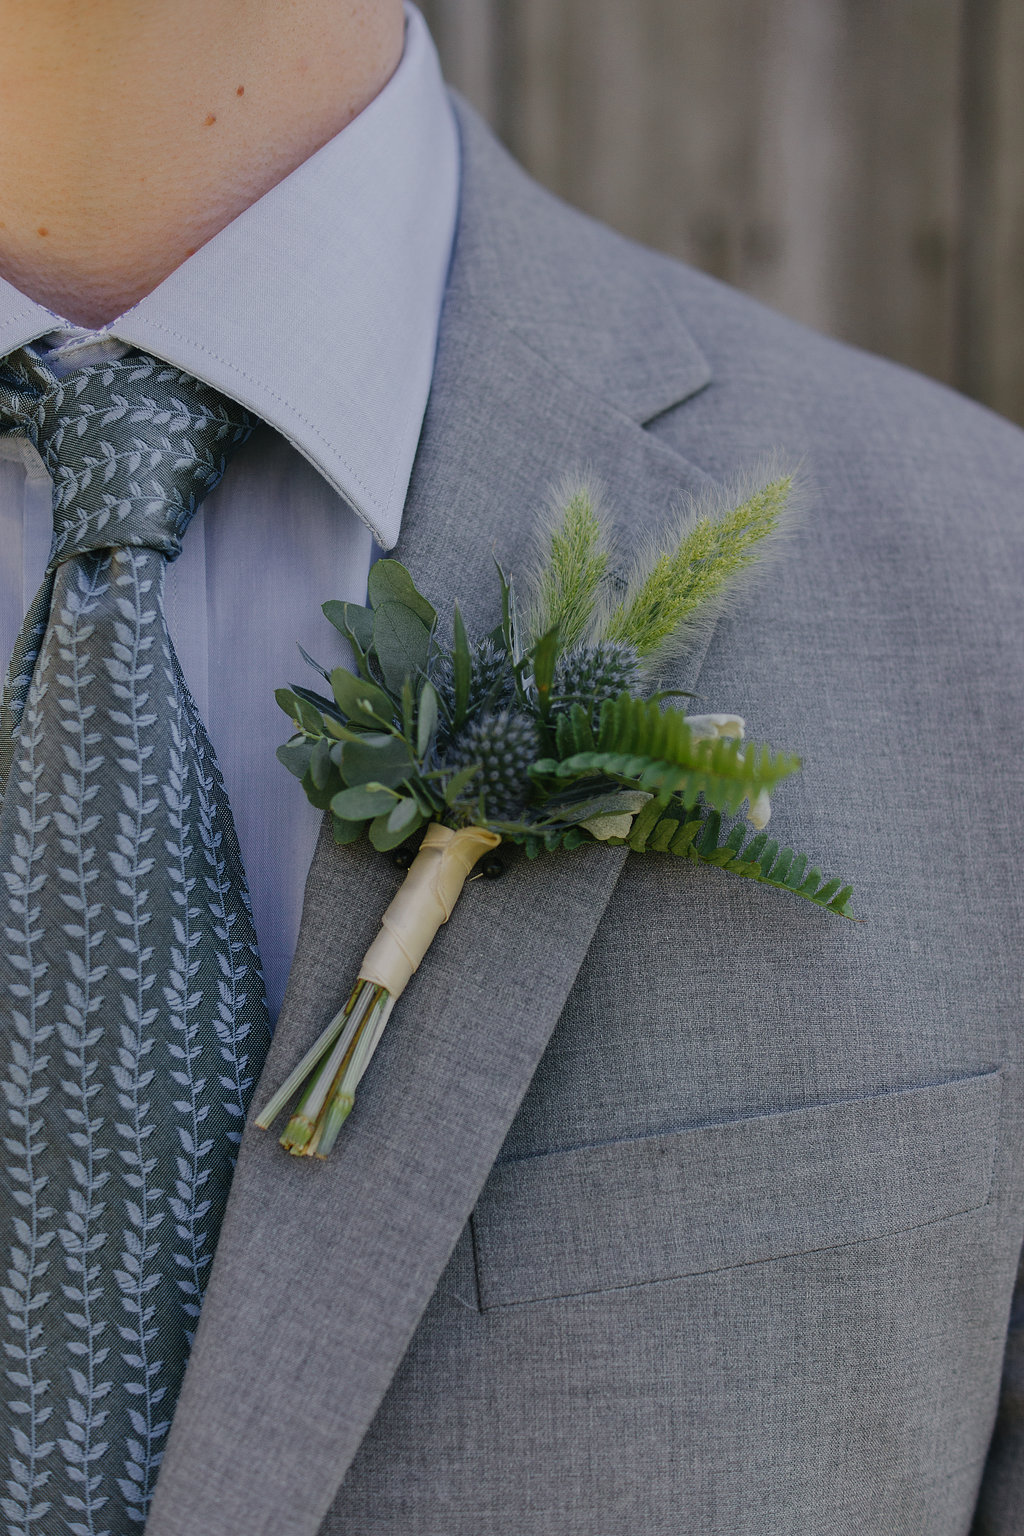 Boutonniere with eryngium, dusty miller, gunnii eucalyptus and bunny tail grass. By Cincinnati wedding florist Floral Verde.